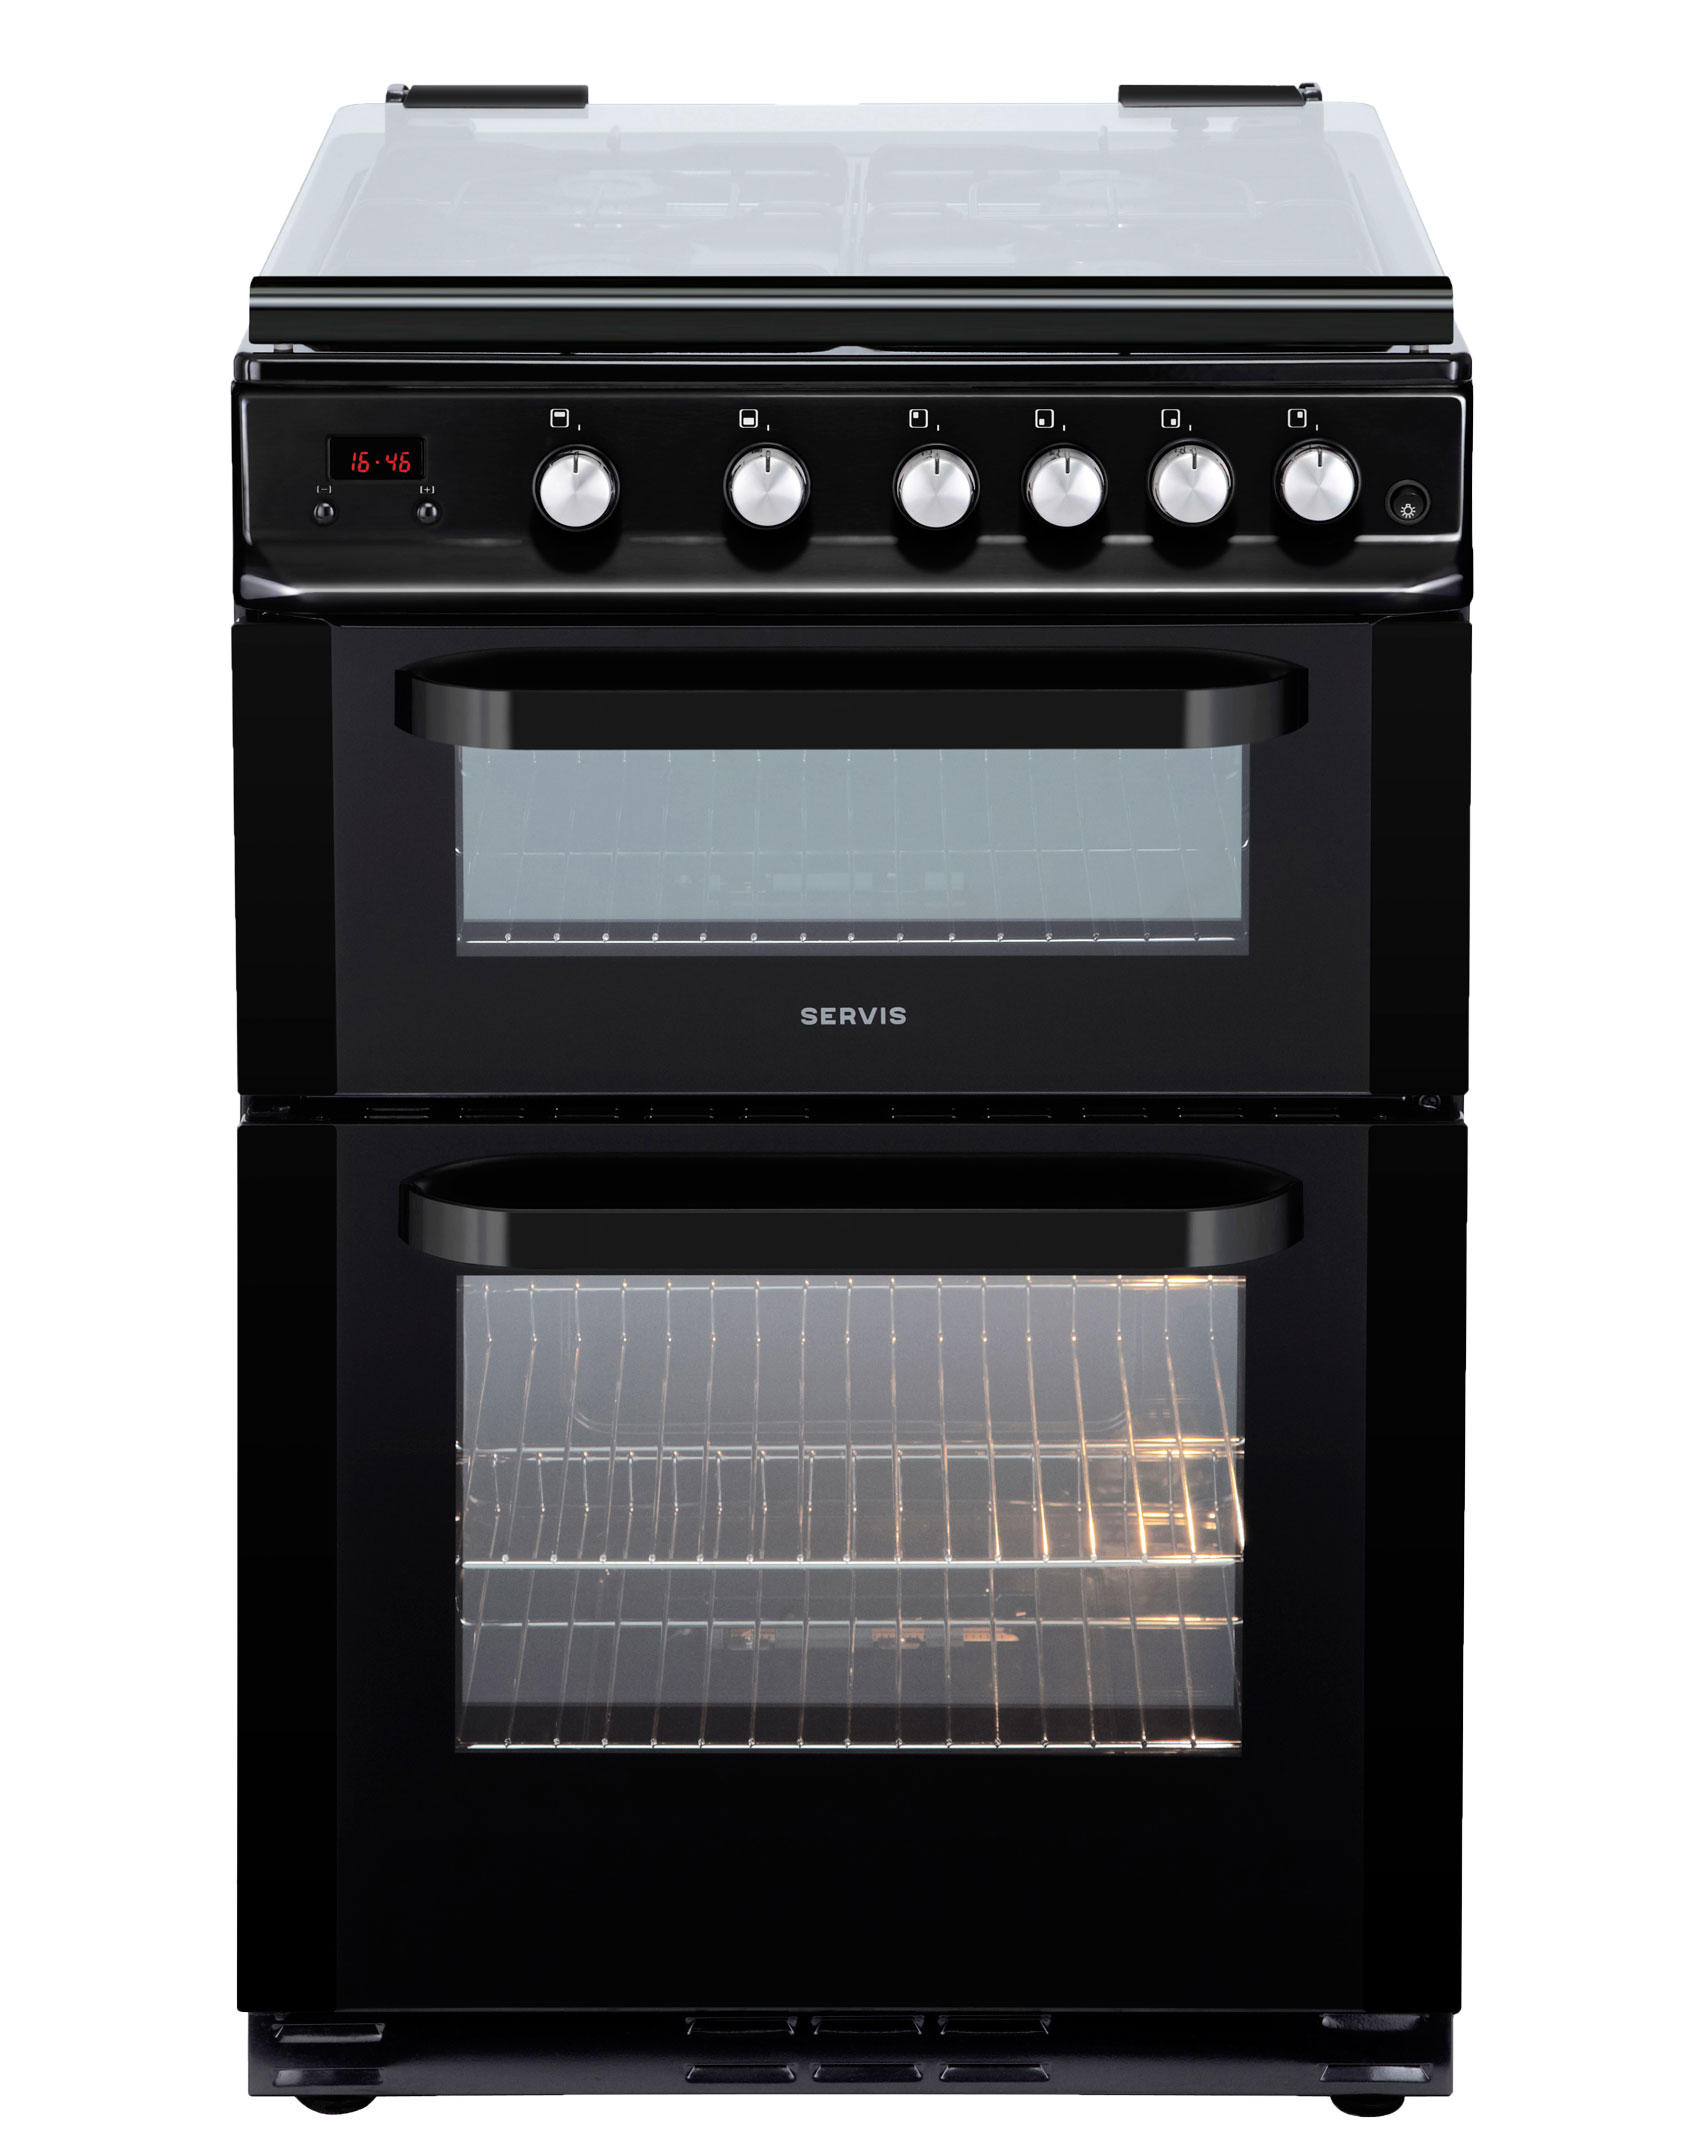 DG60B - Black - Gas Cooker